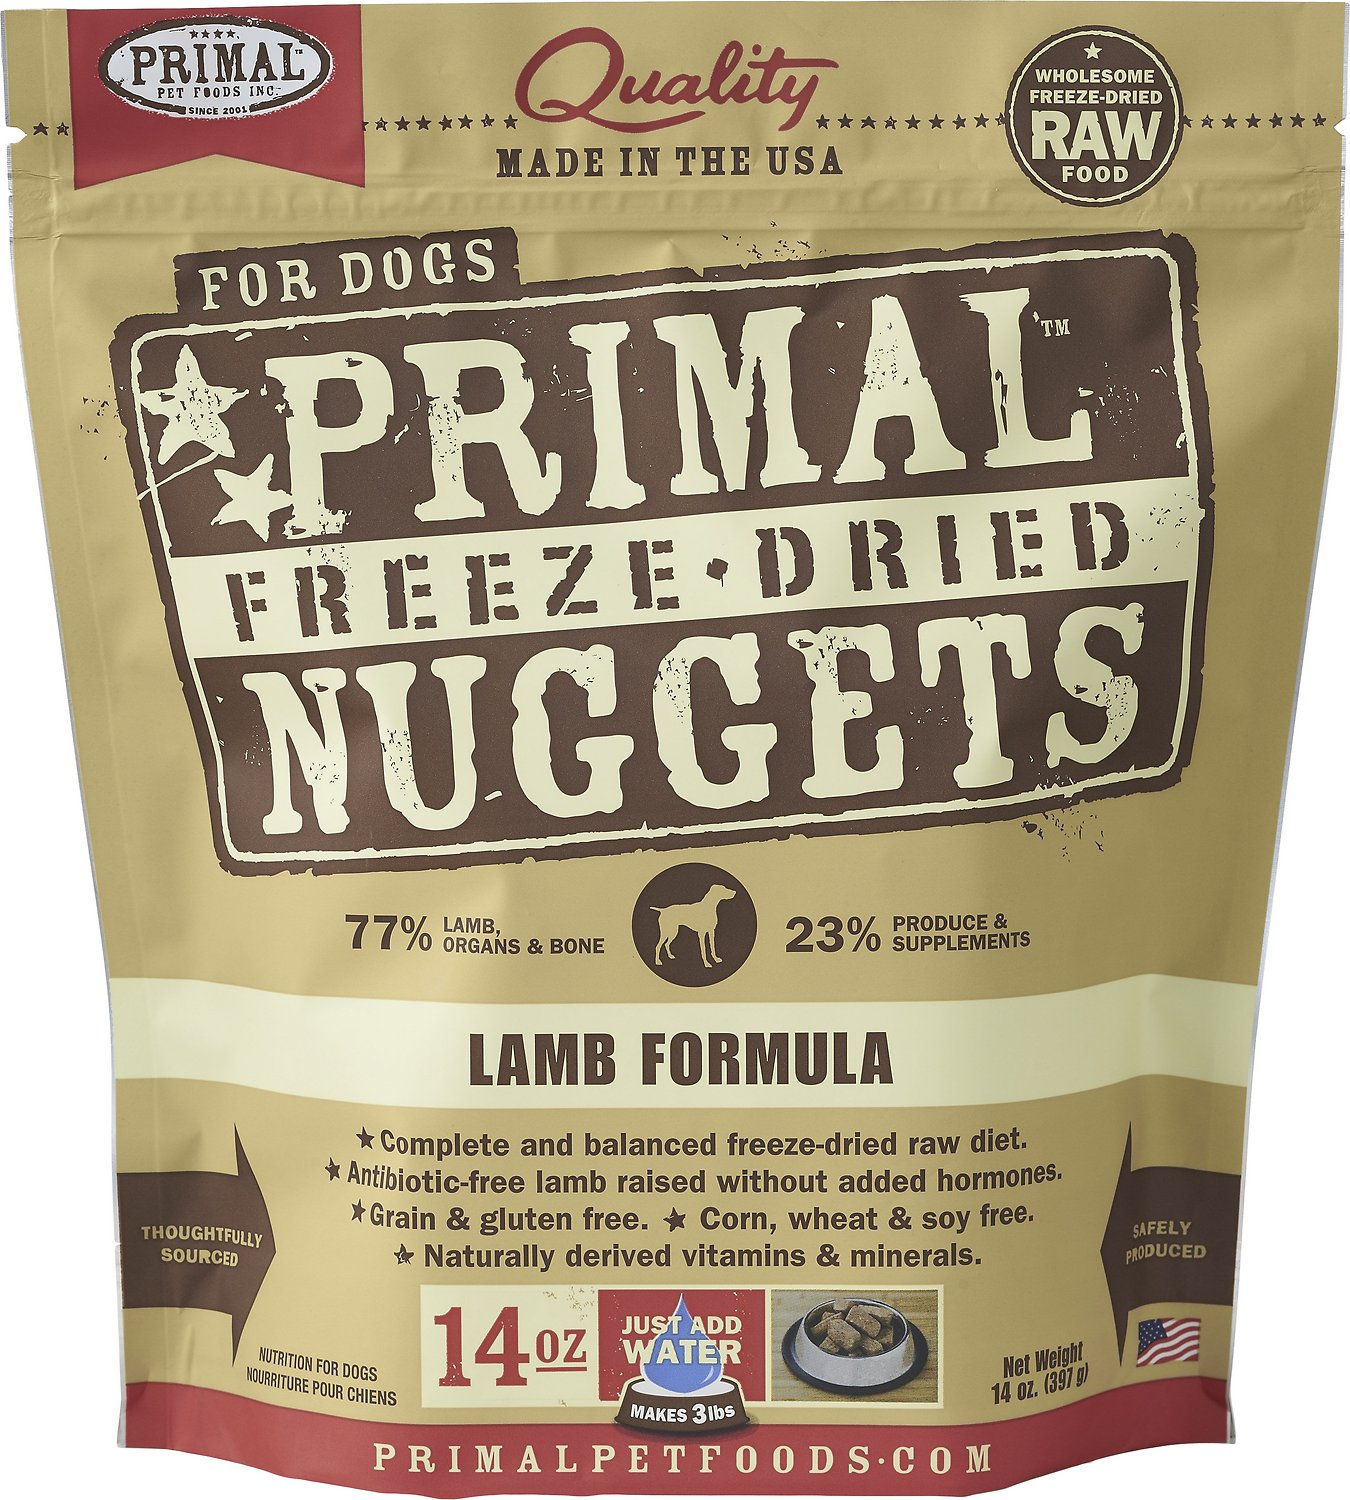 Primal Lamb Formula Nuggets Grain-Free Raw Freeze-Dried Dog Food Image